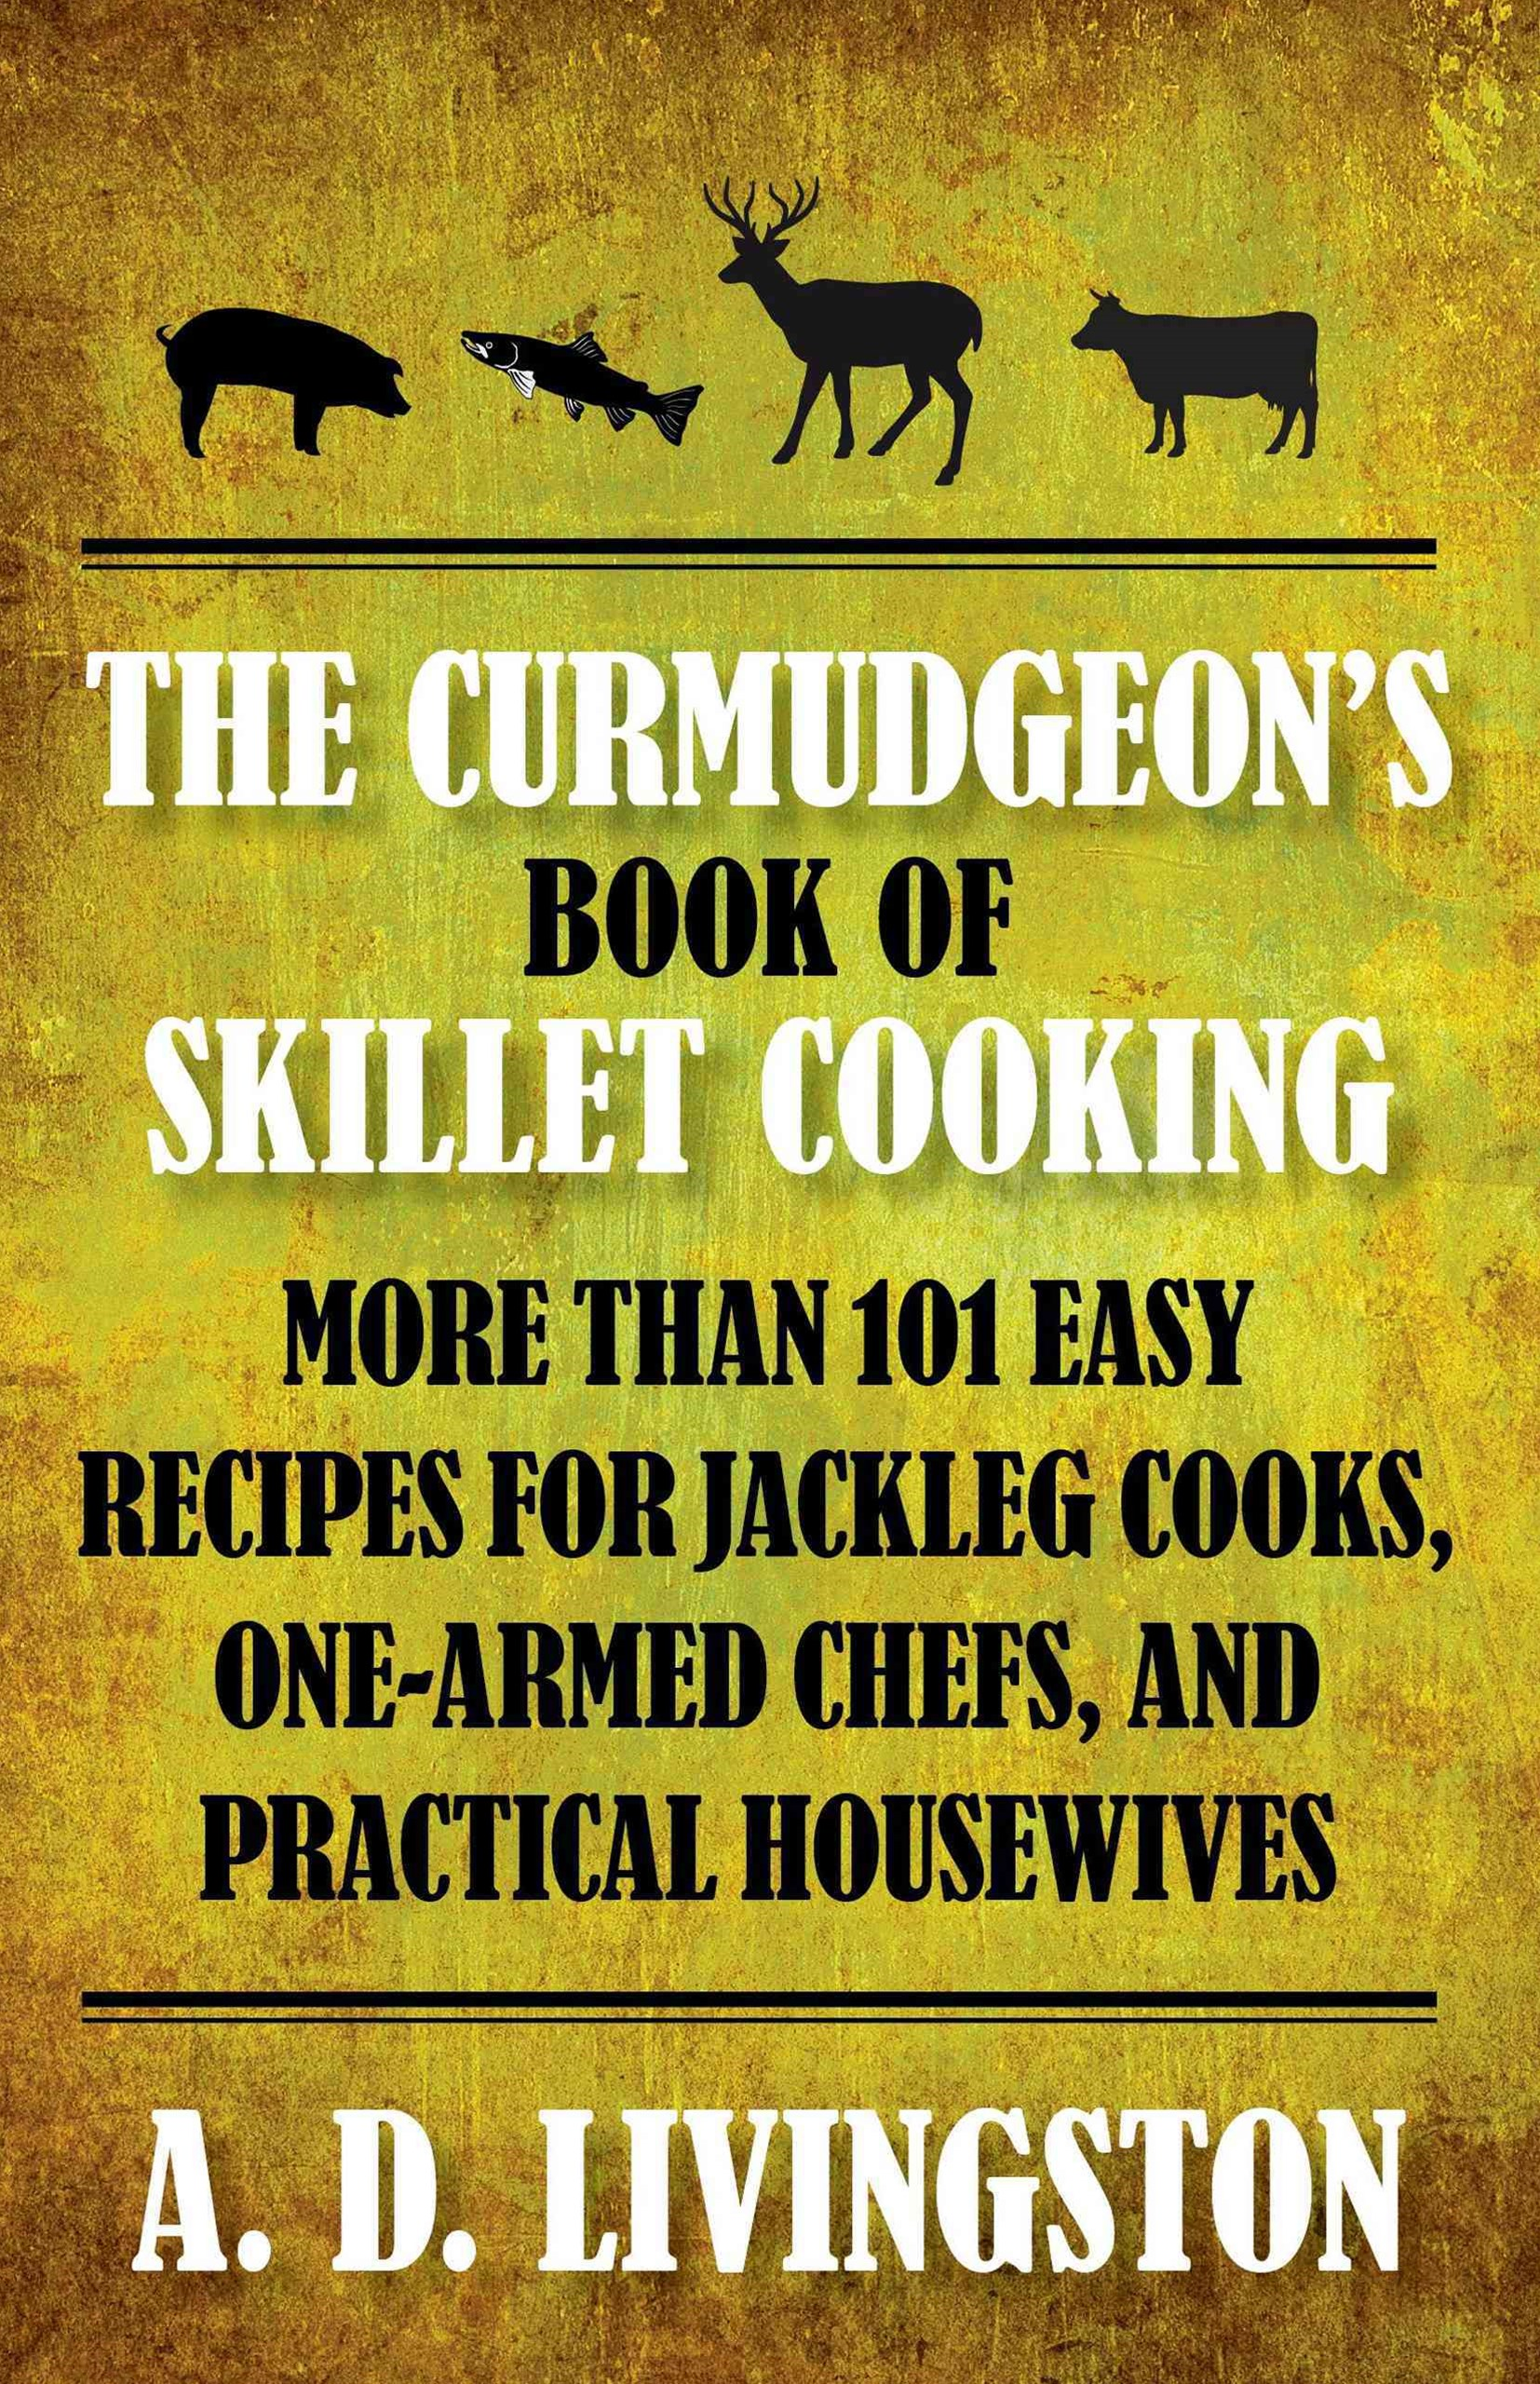 The Curmudgeon's Book of Skillet Cooking